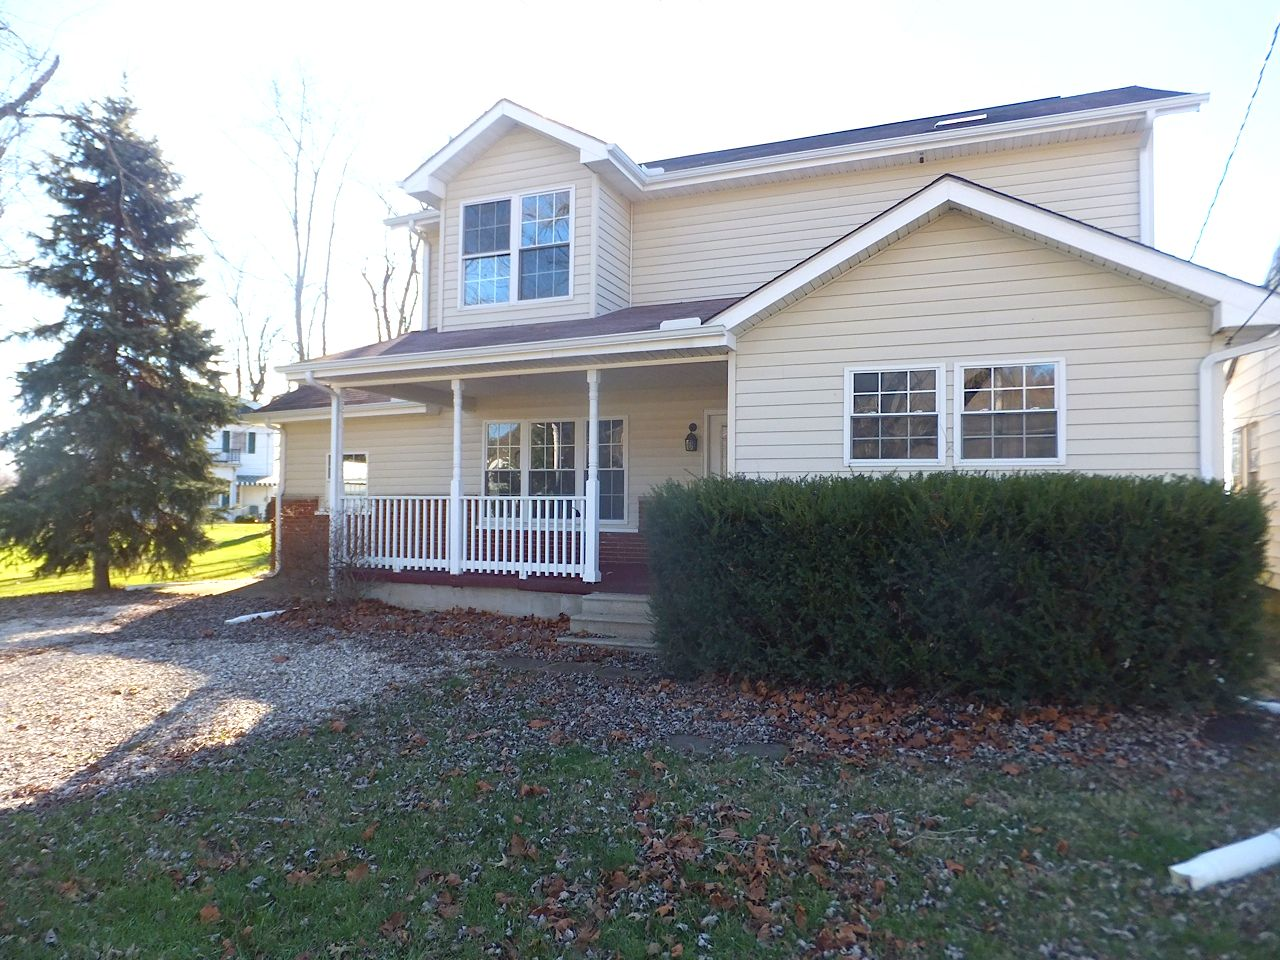 596 County Road 1, South Point, Ohio 45680